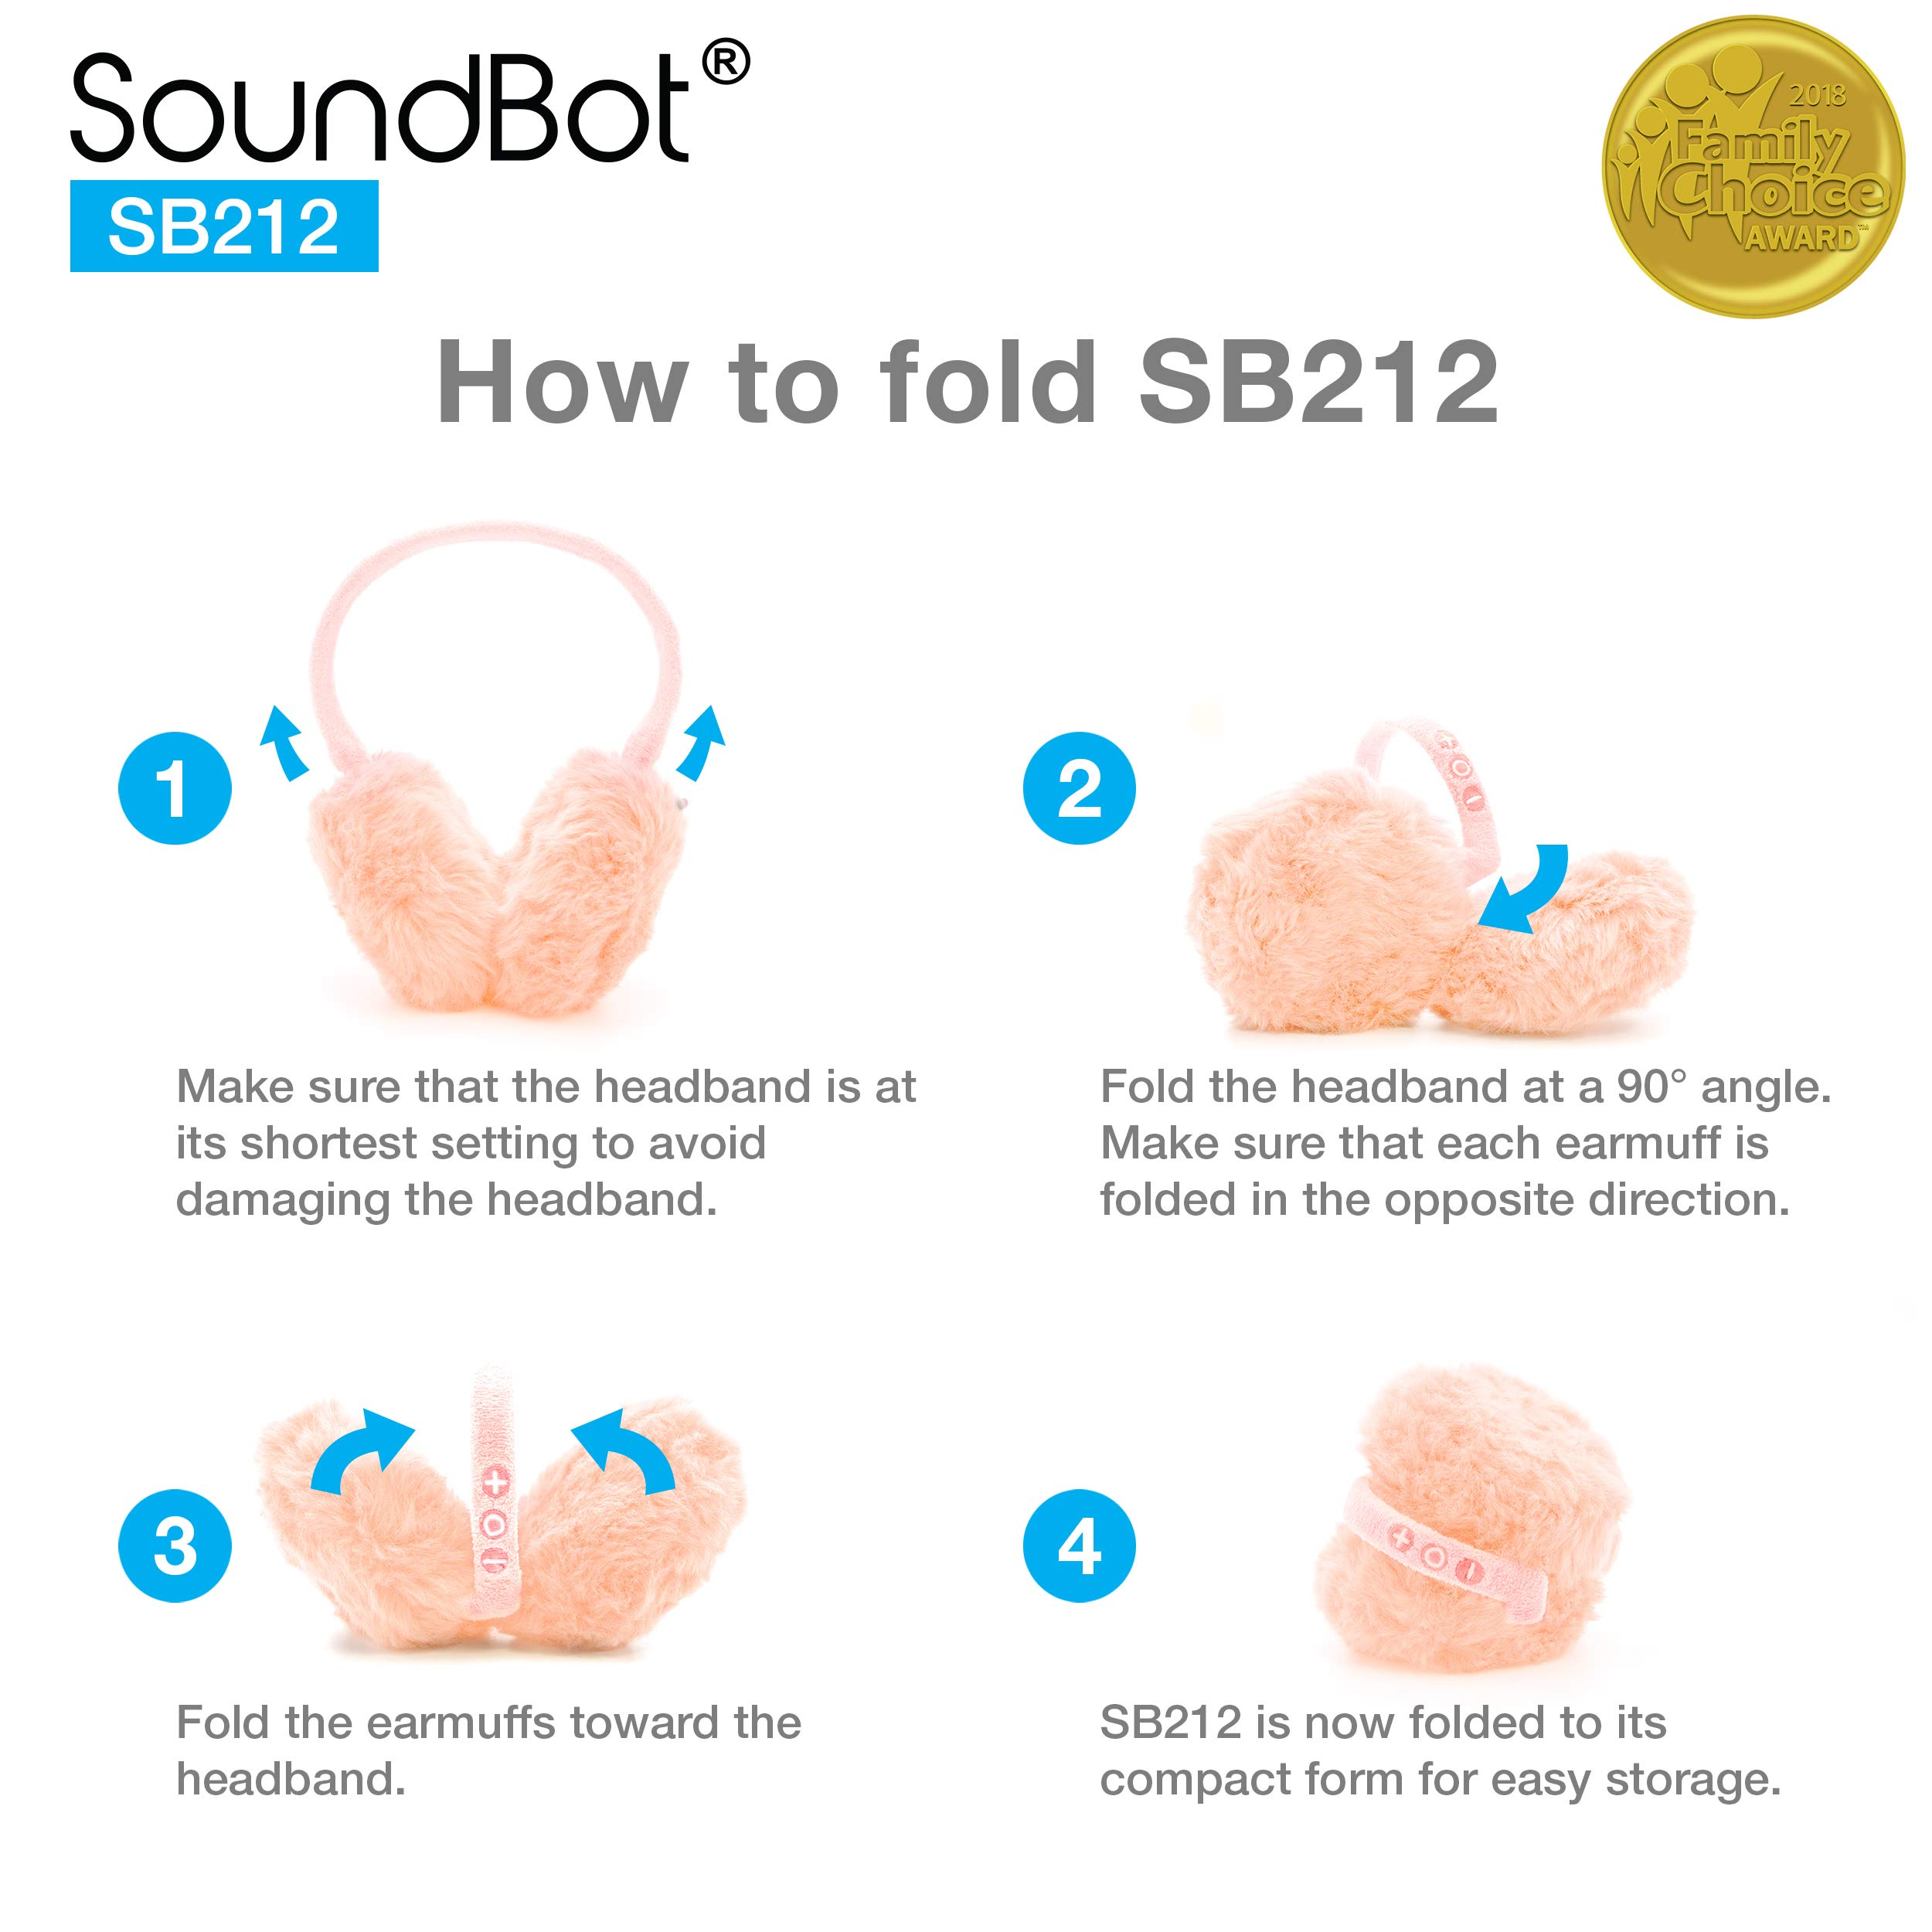 Soundbot SB212 HD Stereo Bluetooth 4.1 Wireless Musical Earmuffs Headphone,Up to 5 Hrs Play Time, Up to 8 Hrs Talk Time,60 Hrs Standby Time, Build-in Mic